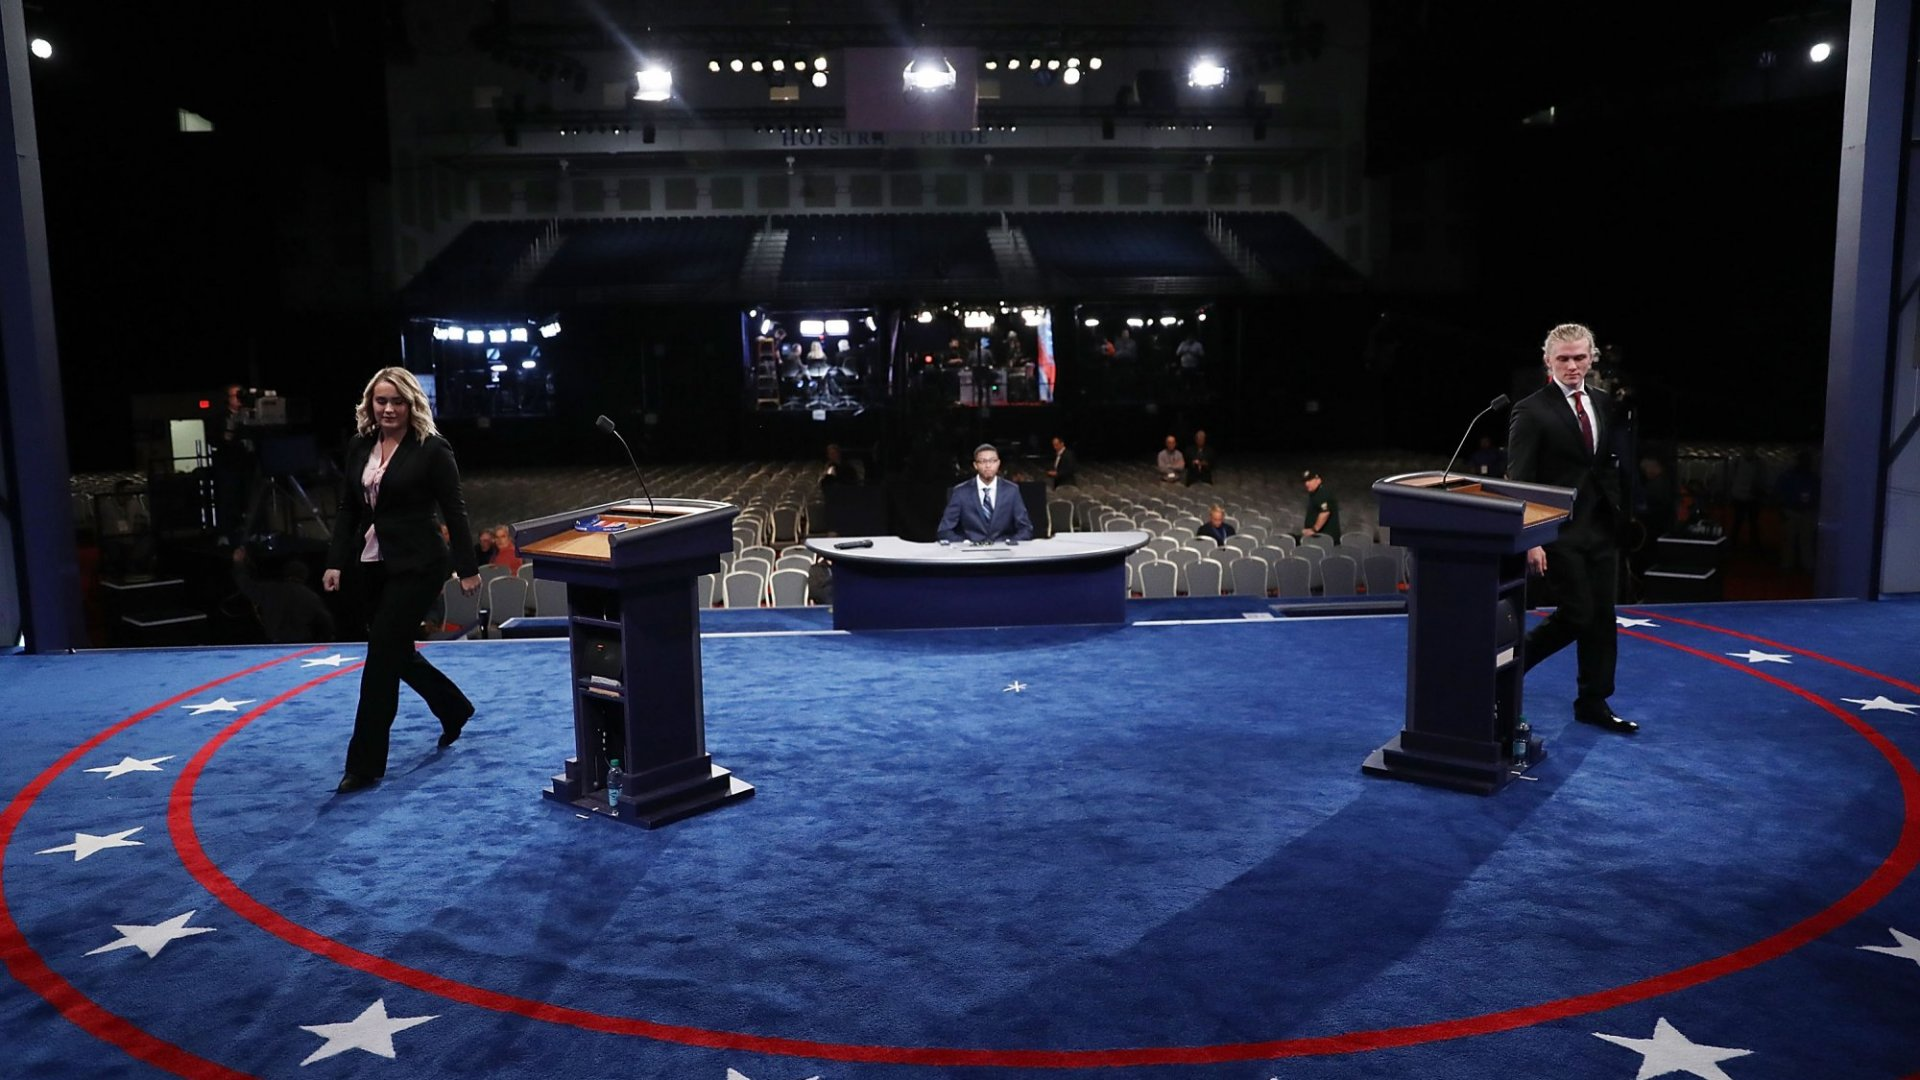 You Don't Have to Be Clinton or Trump to Need Good Debate Skills